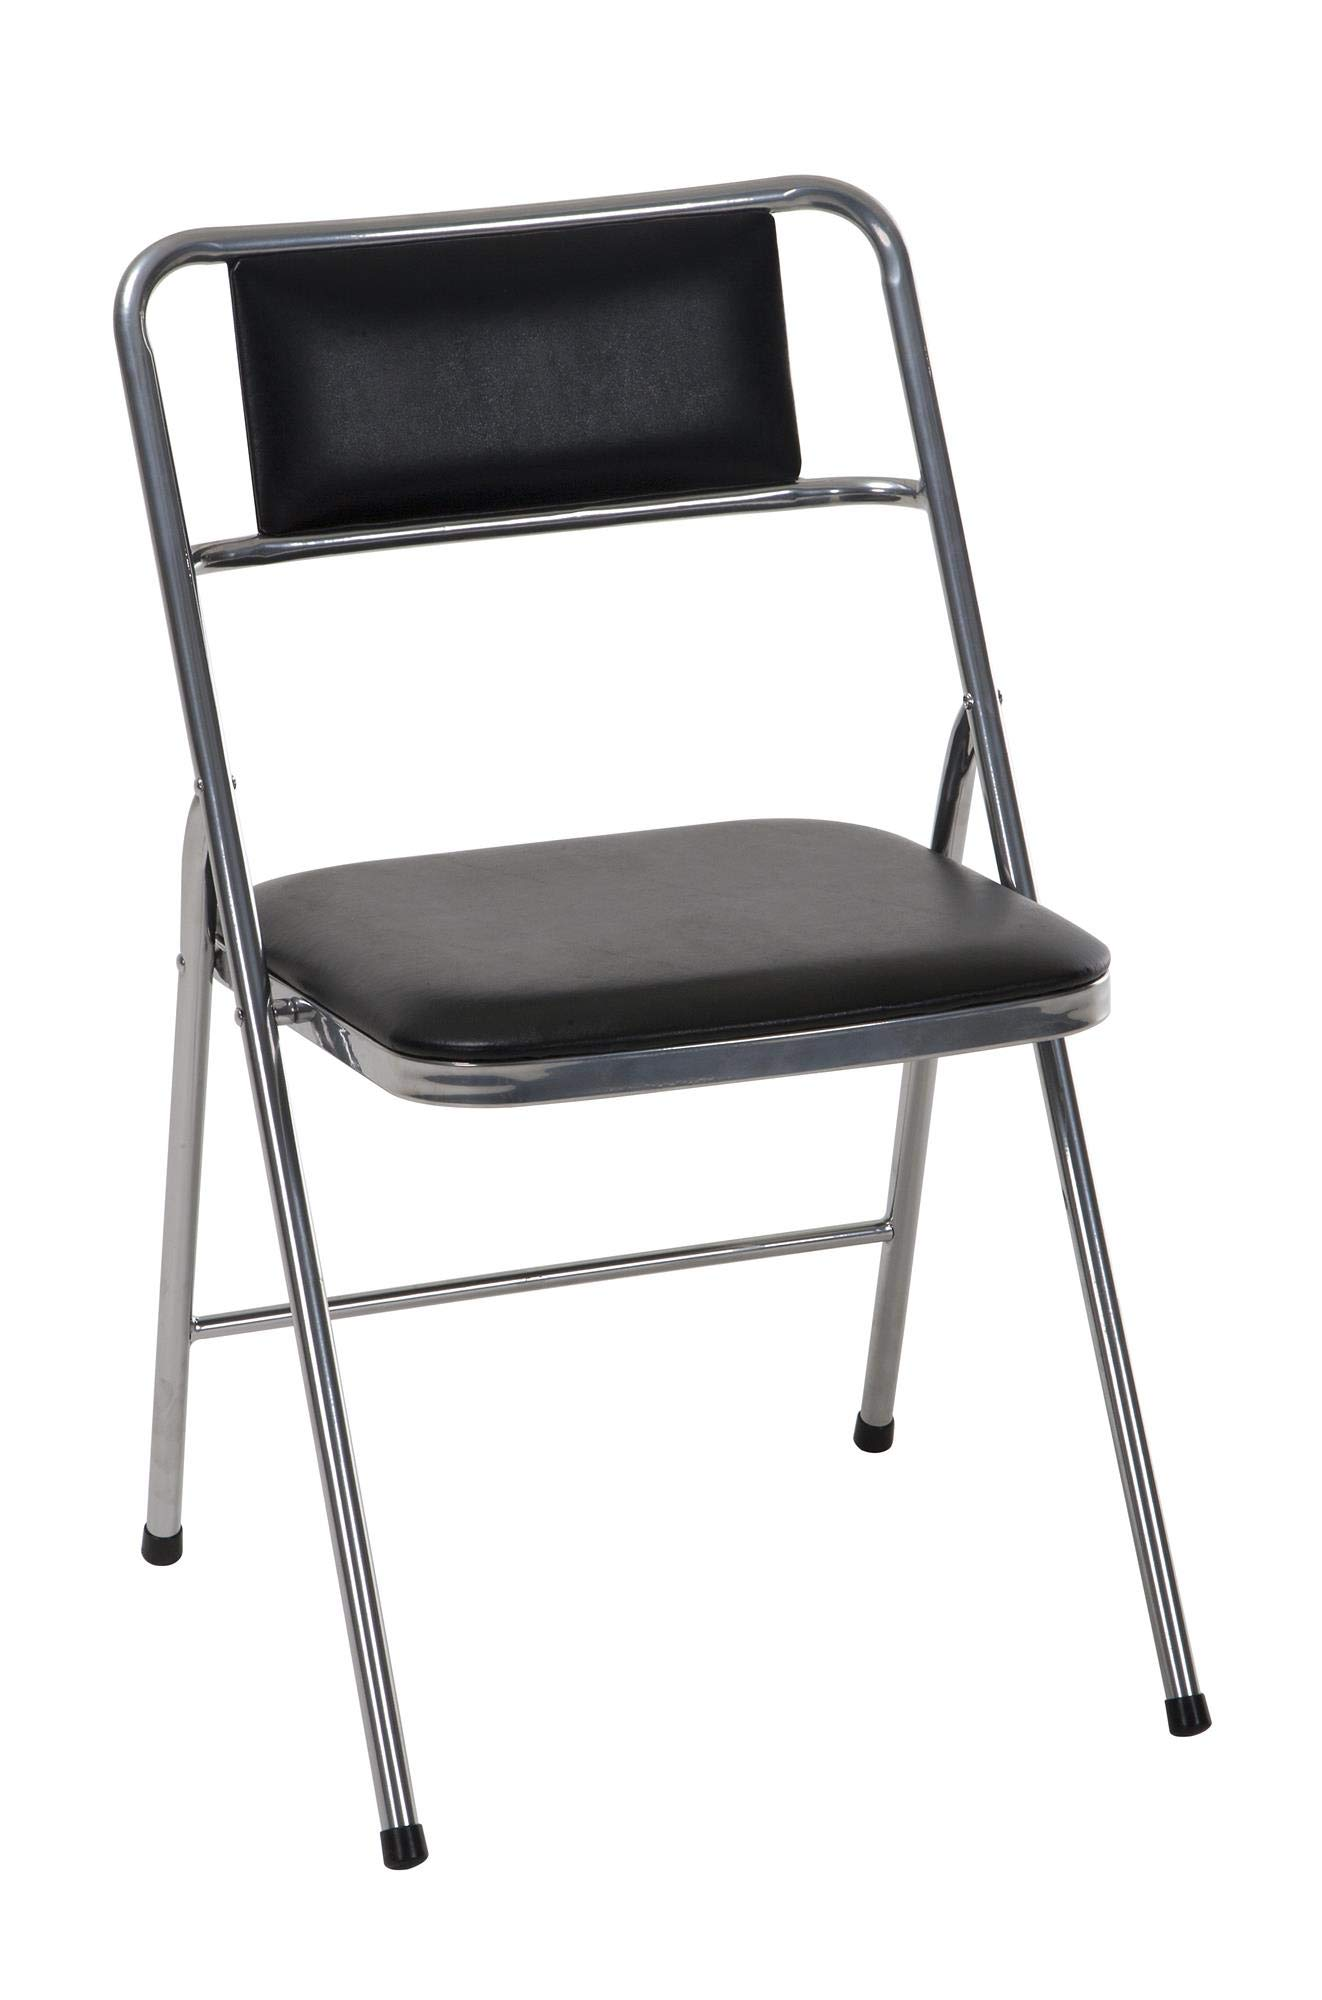 COSCO Stylaire Vinyl Padded Folding Chair, 4-Pack,  Silver by Cosco